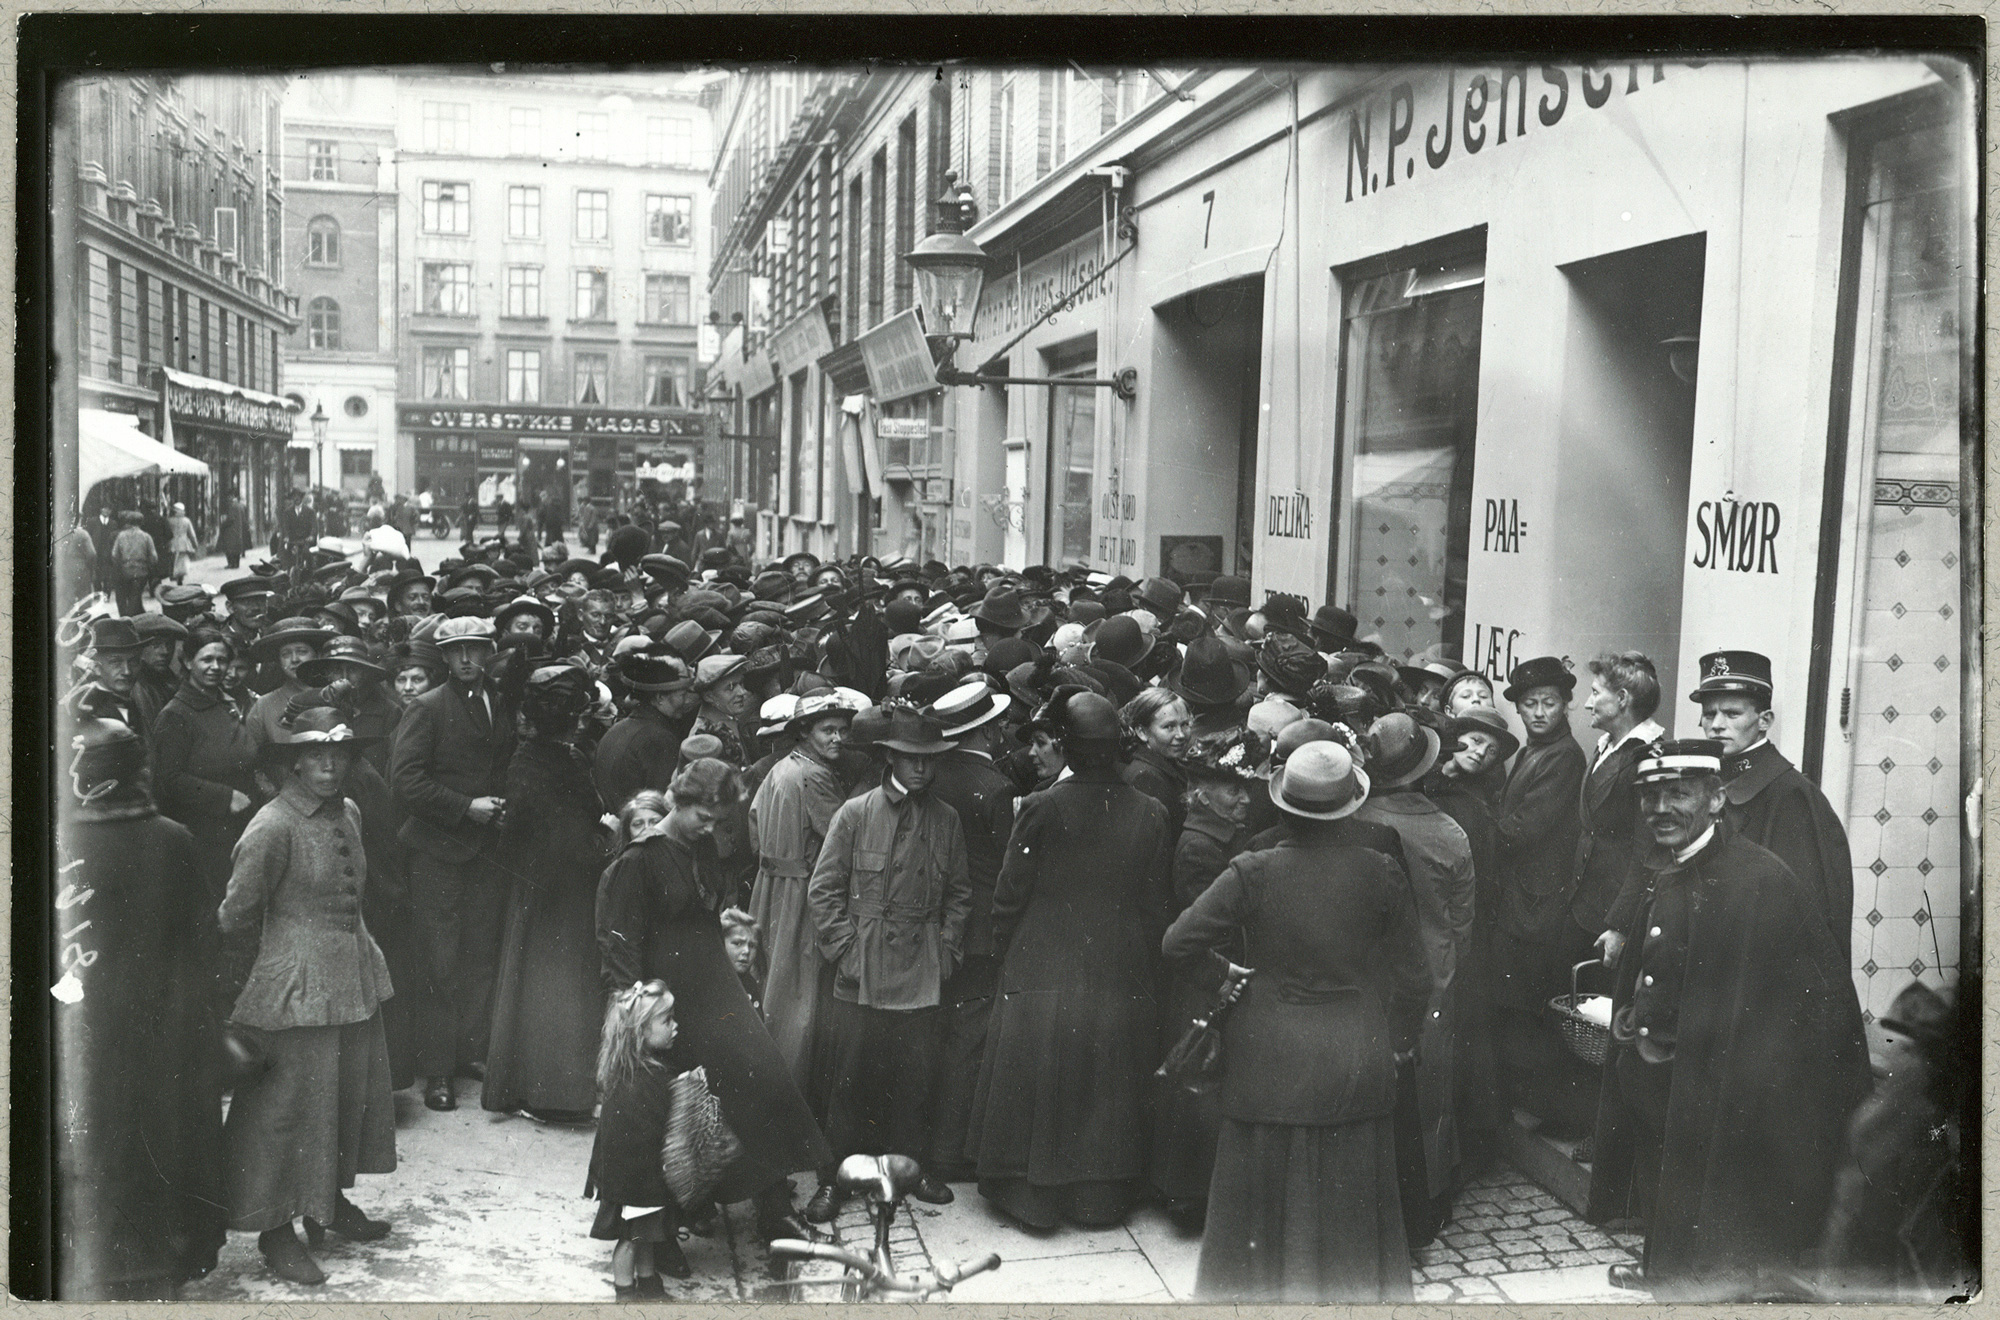 Photograph showing a crowd queuing outside a butcher's in the working-class district of Nørrebro in Copenhagen.